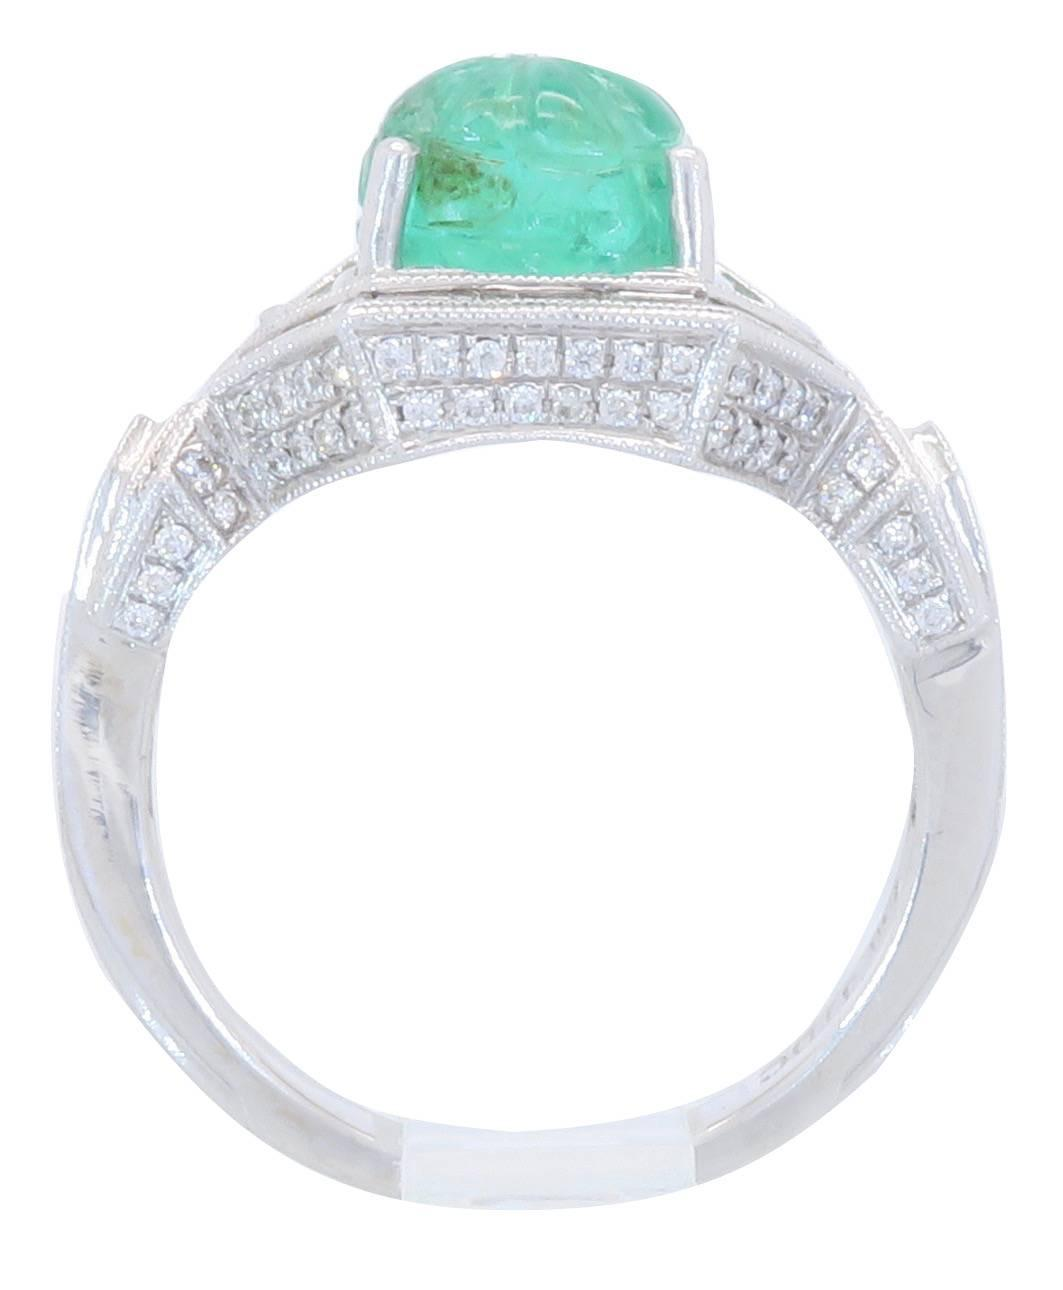 18k White Gold Diamond And Carved Emerald Ring For Sale At